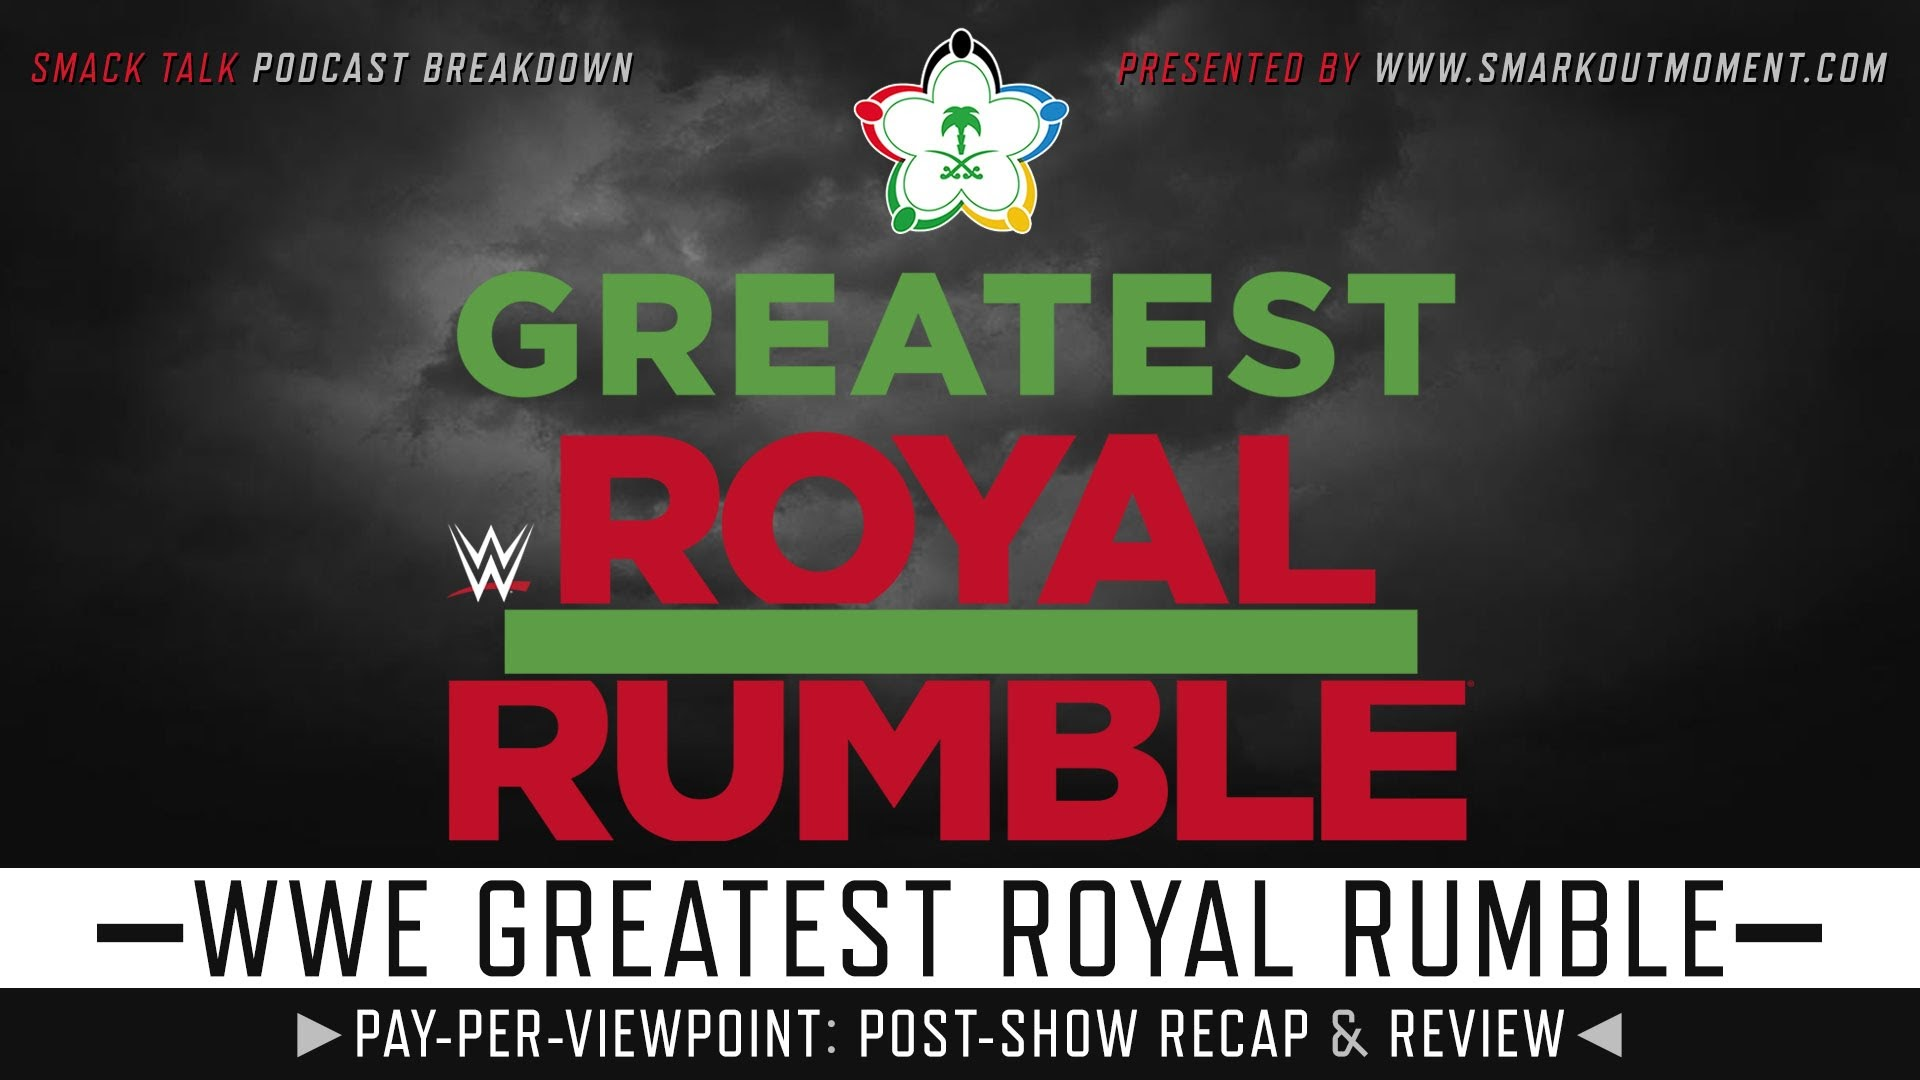 WWE Greatest Royal Rumble 2018 Recap and Review Podcast